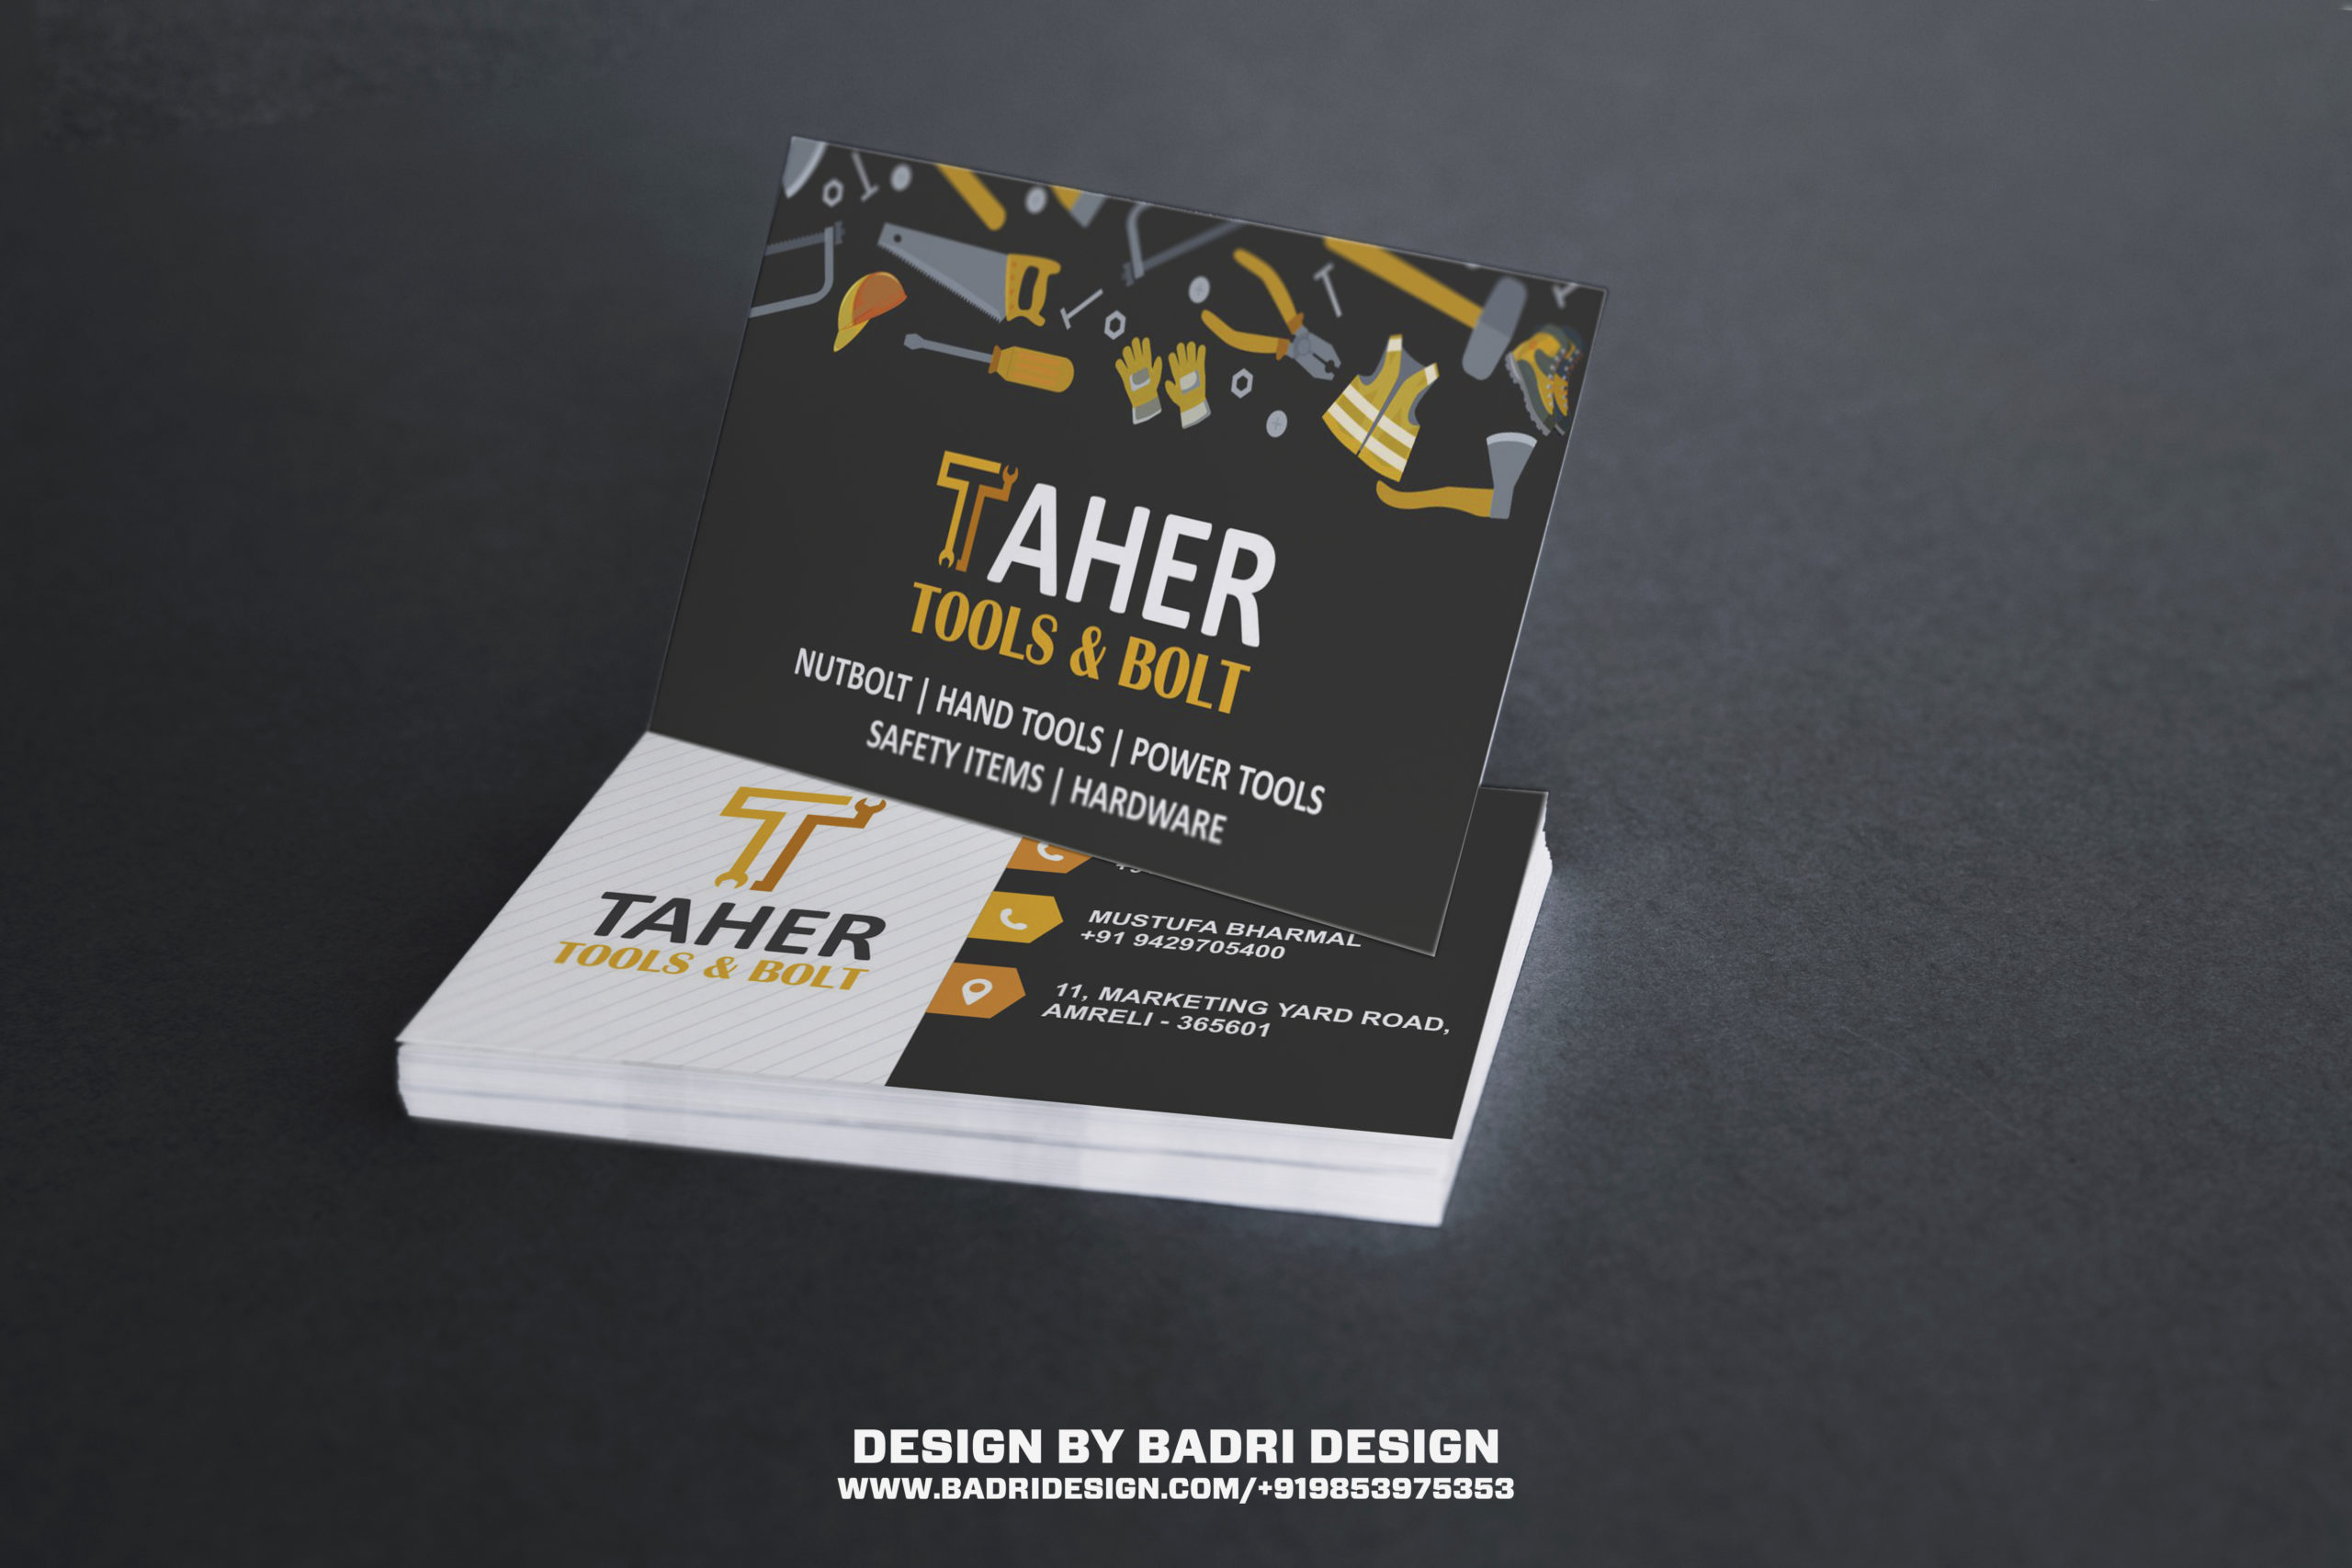 Tools and bolt seller shop business card design by Badri Design